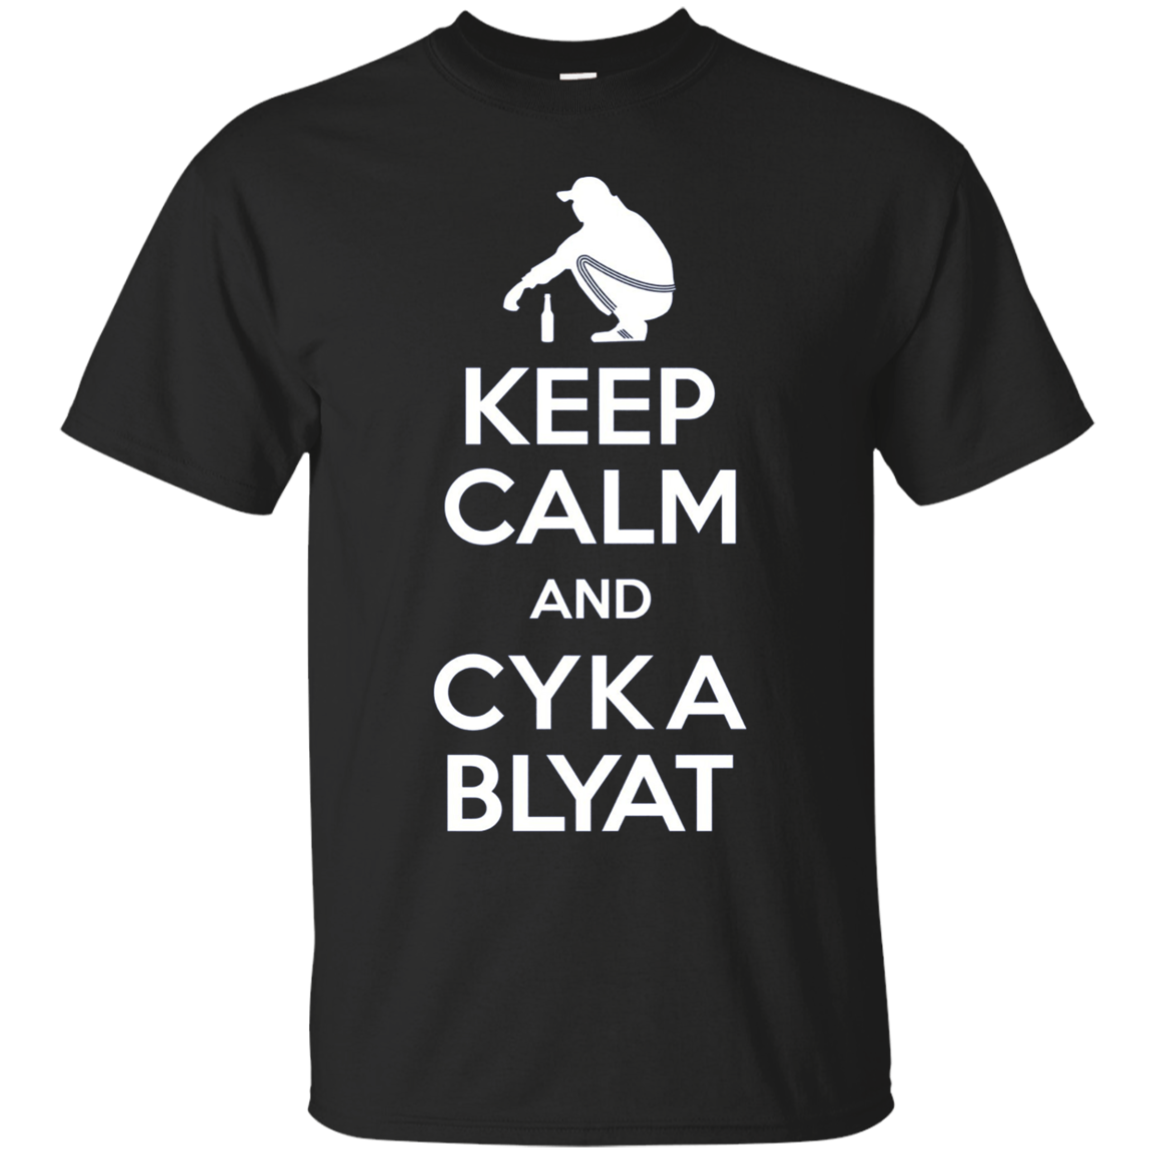 Keep Calm And Cyka Blyat - Slav Gopnik Gamer Long Sleeve